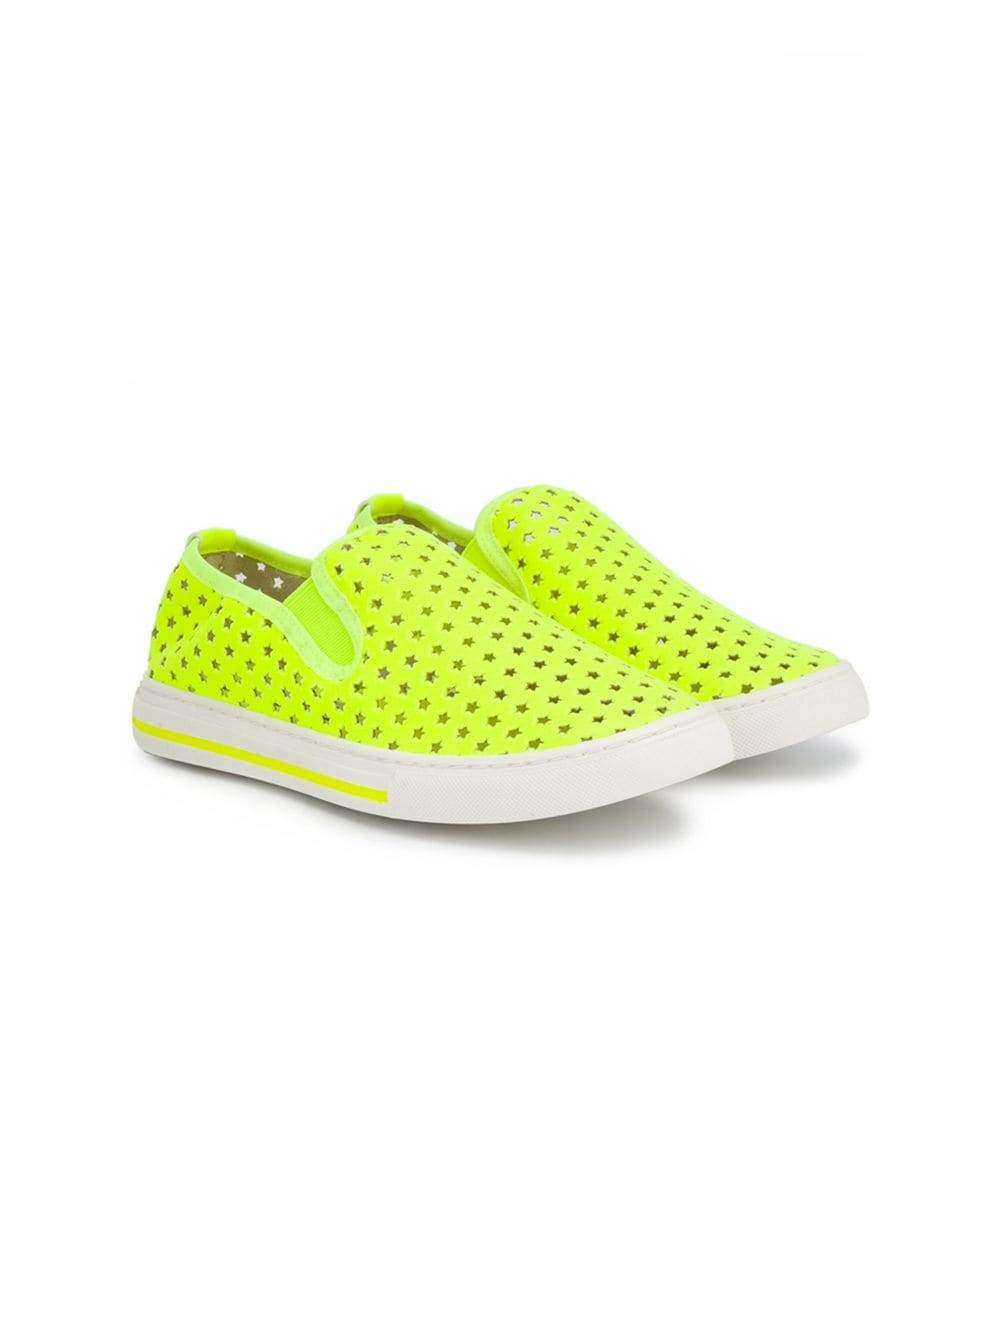 Shoes Cut Stars Stella McCartney Kids | Zirkuss